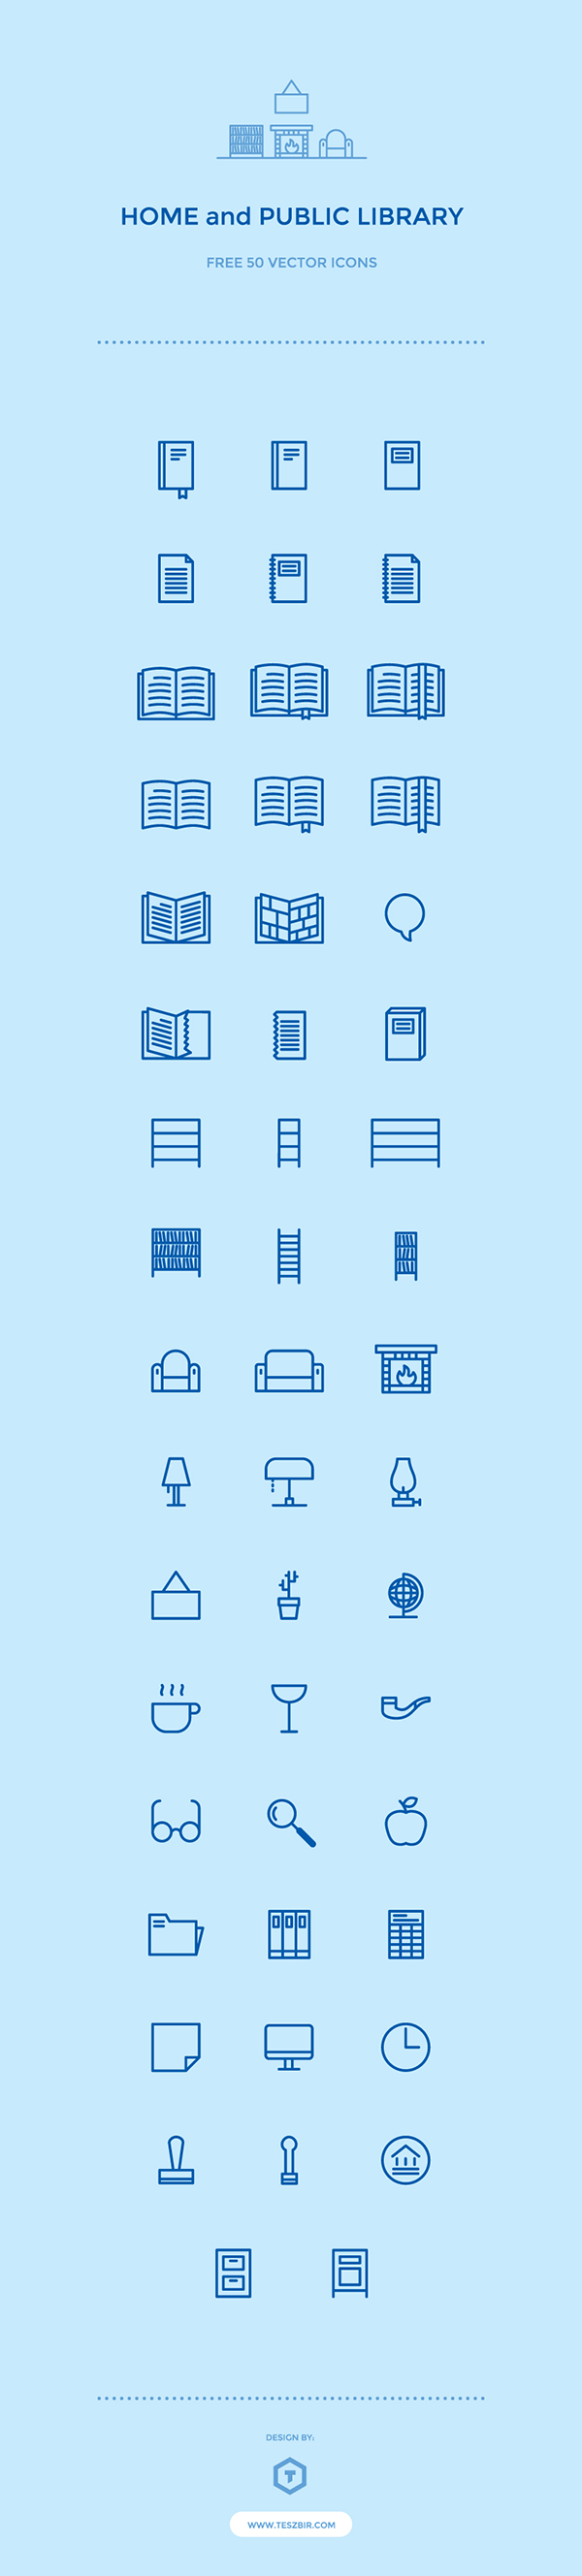 50 Home and Library Icons | GraphicBurger